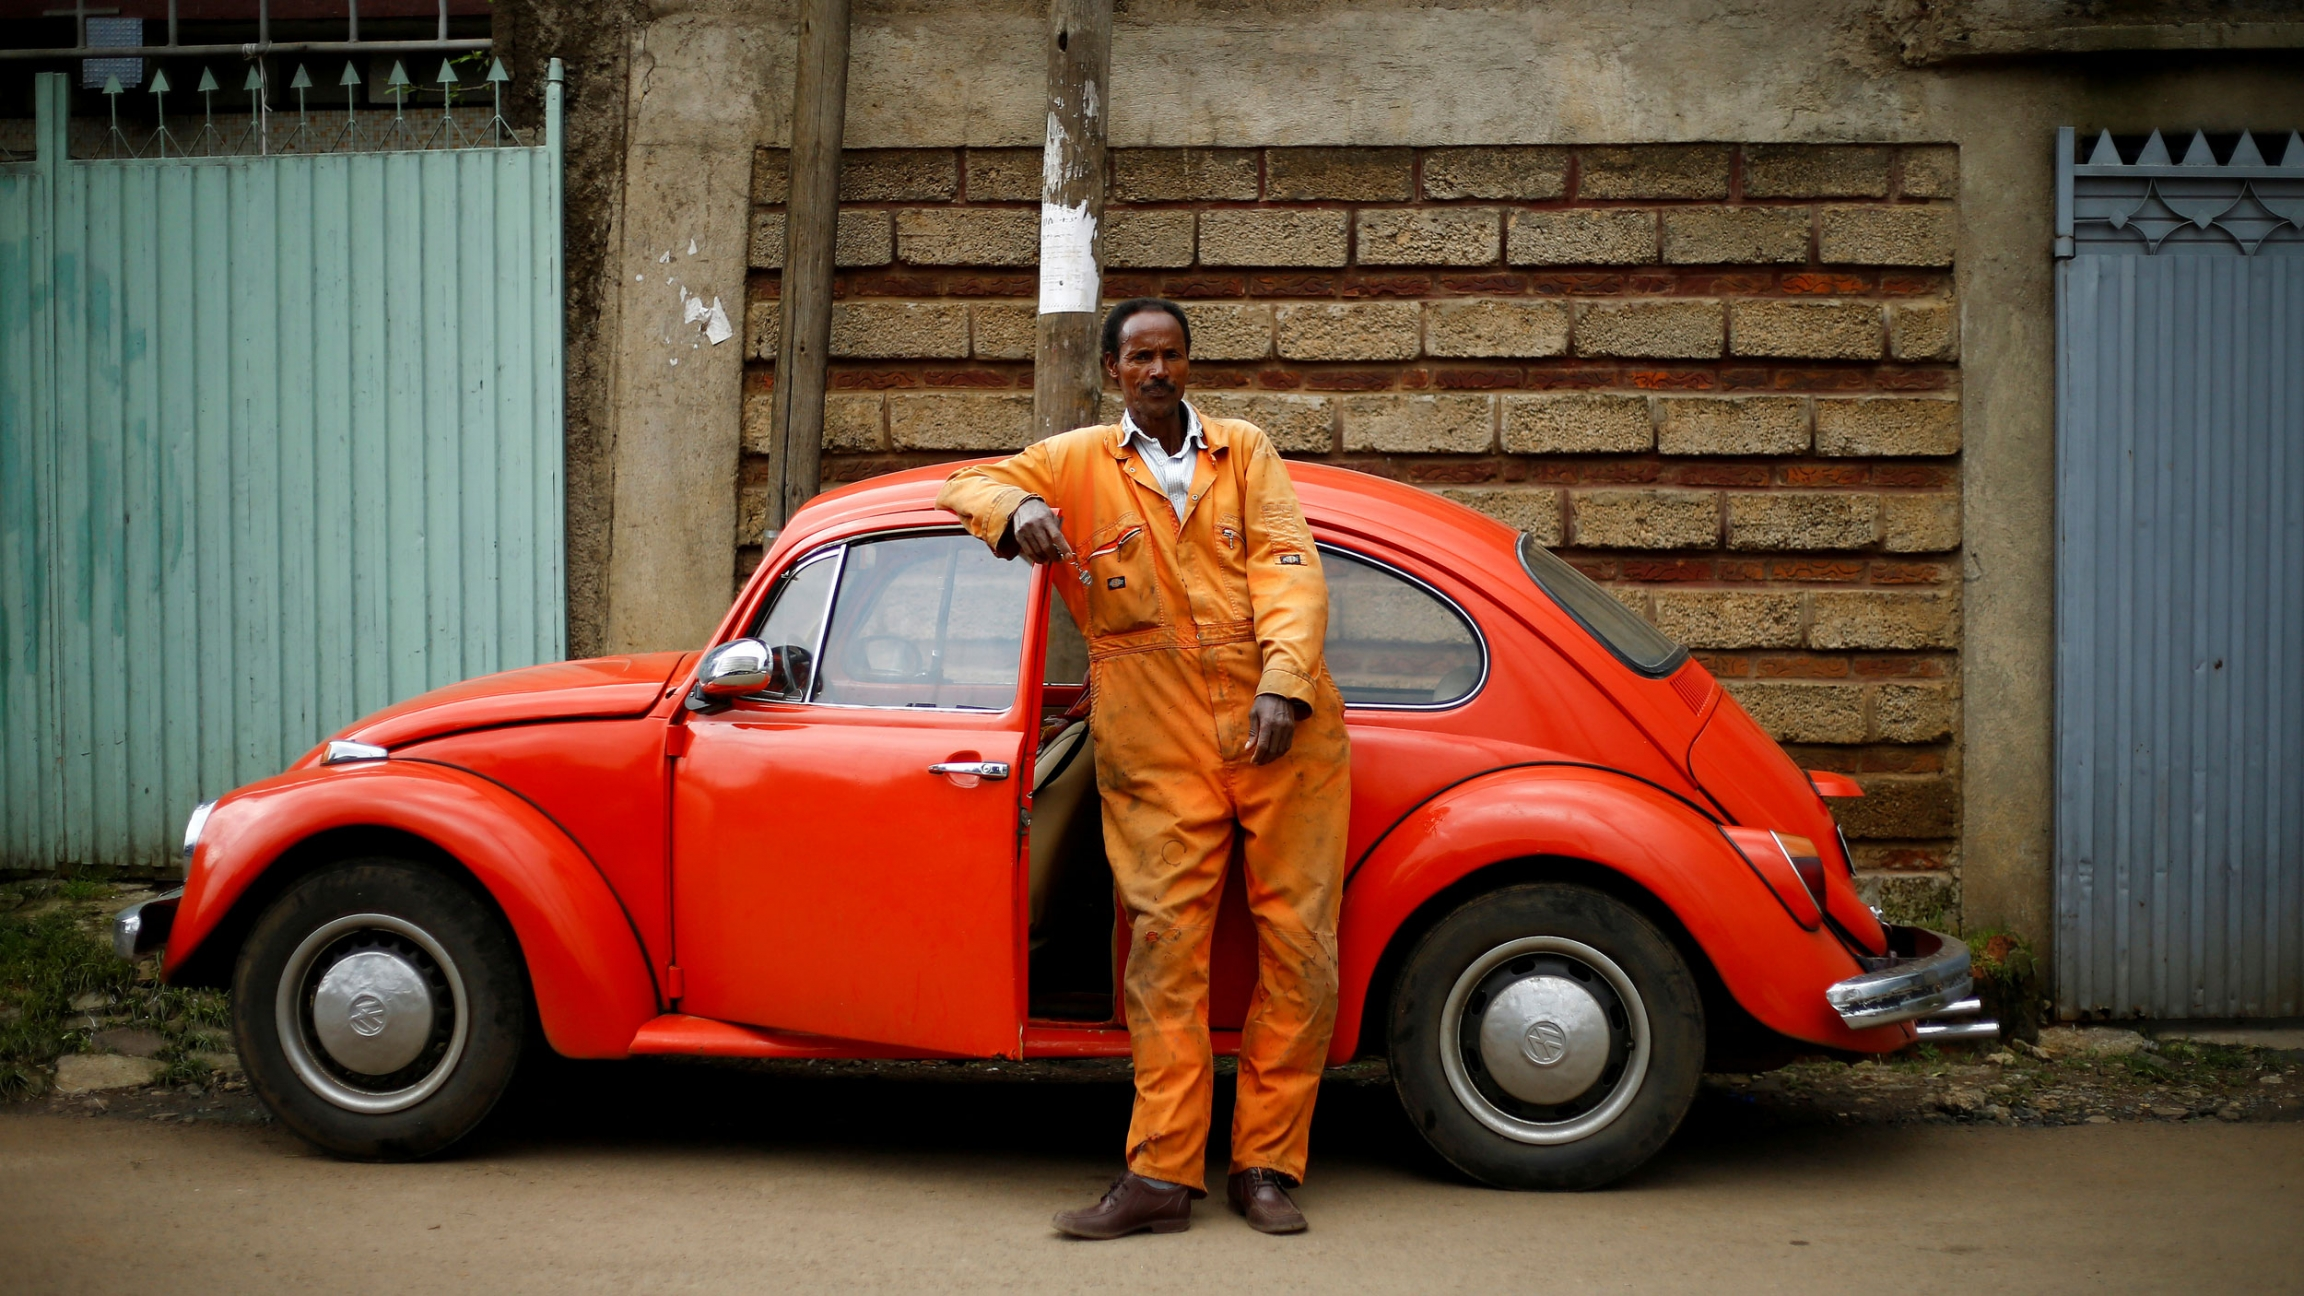 a man in an orange jump suit leans his arm on a red 1965 model volkswagen [ 2304 x 1296 Pixel ]